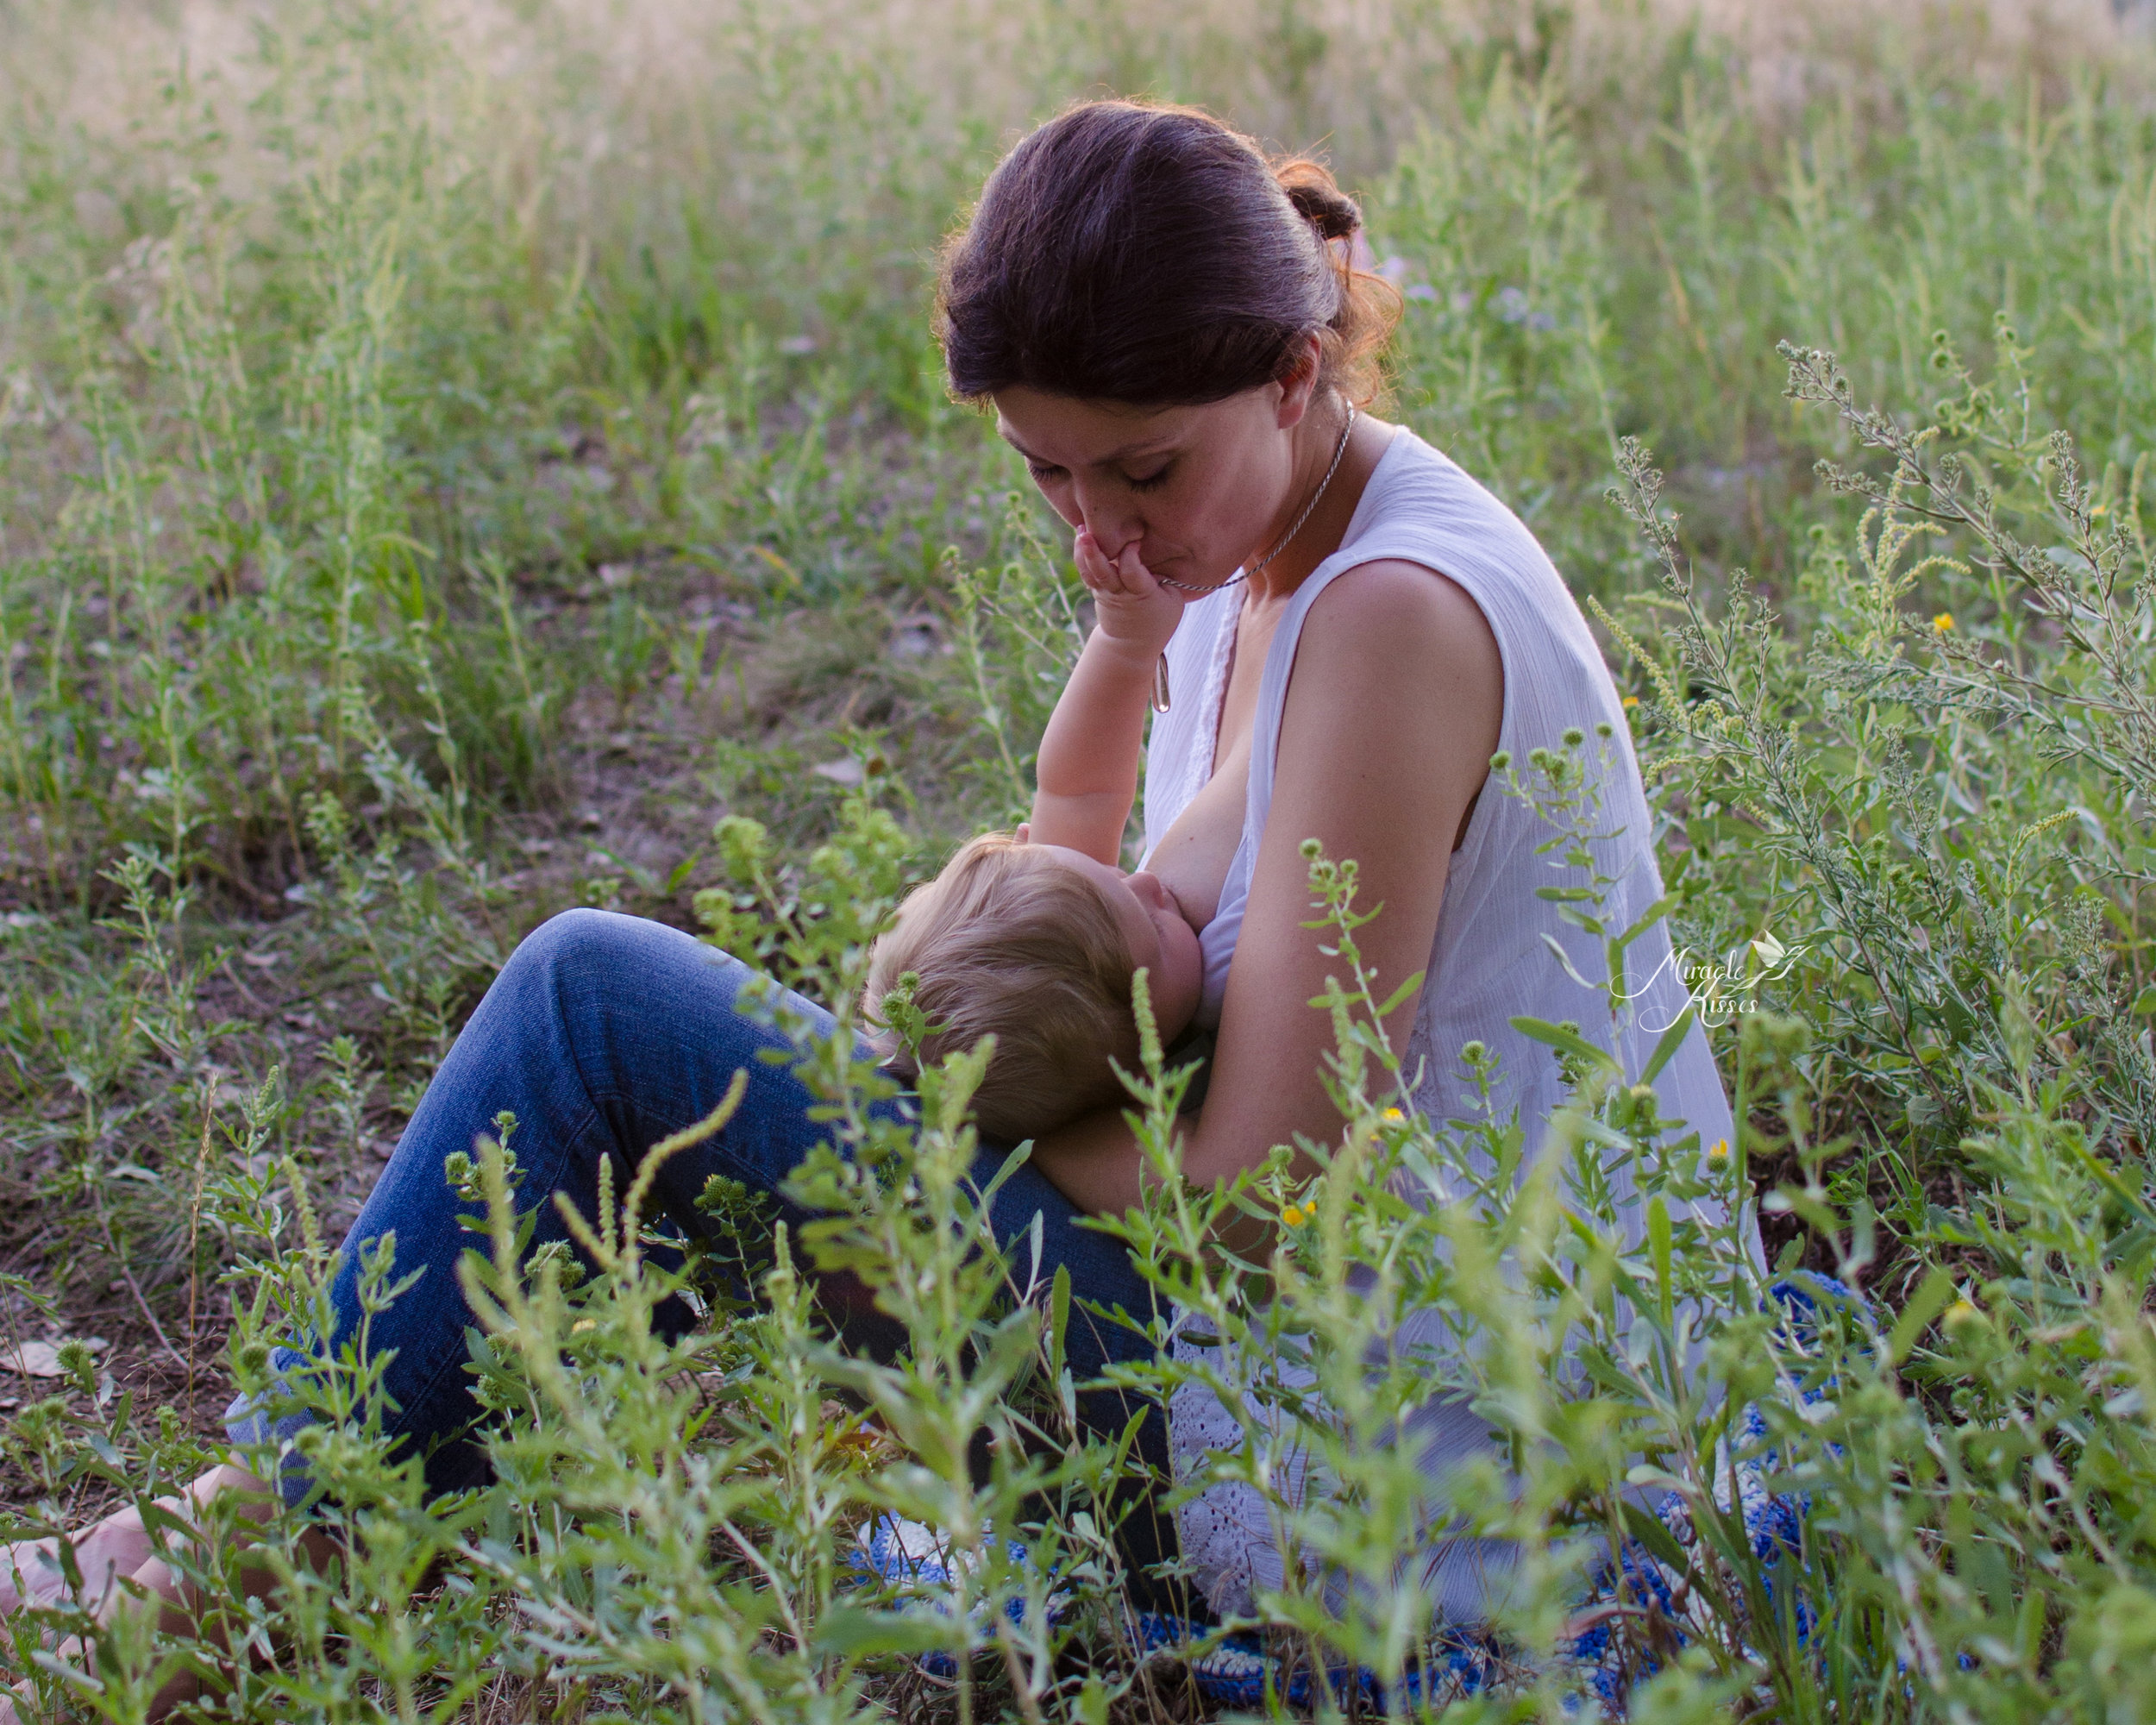 nursing acrobatics, extended breastfeeding, mommy and me in the grass